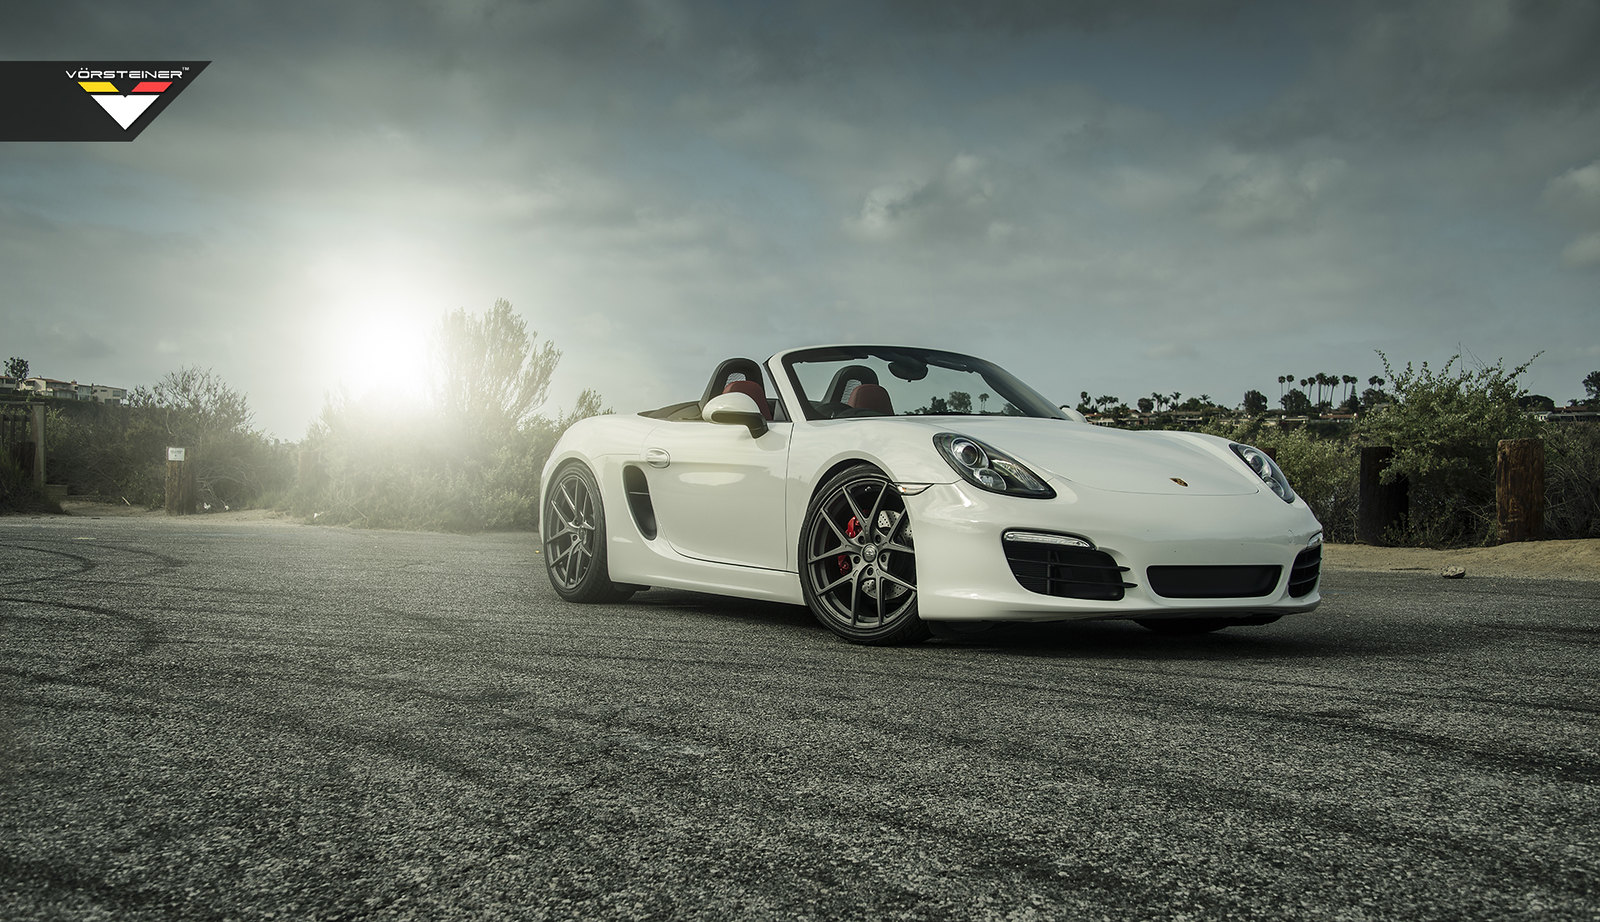 Porsche boxter s on vorsteiner v ff 101 in textured gunmetal